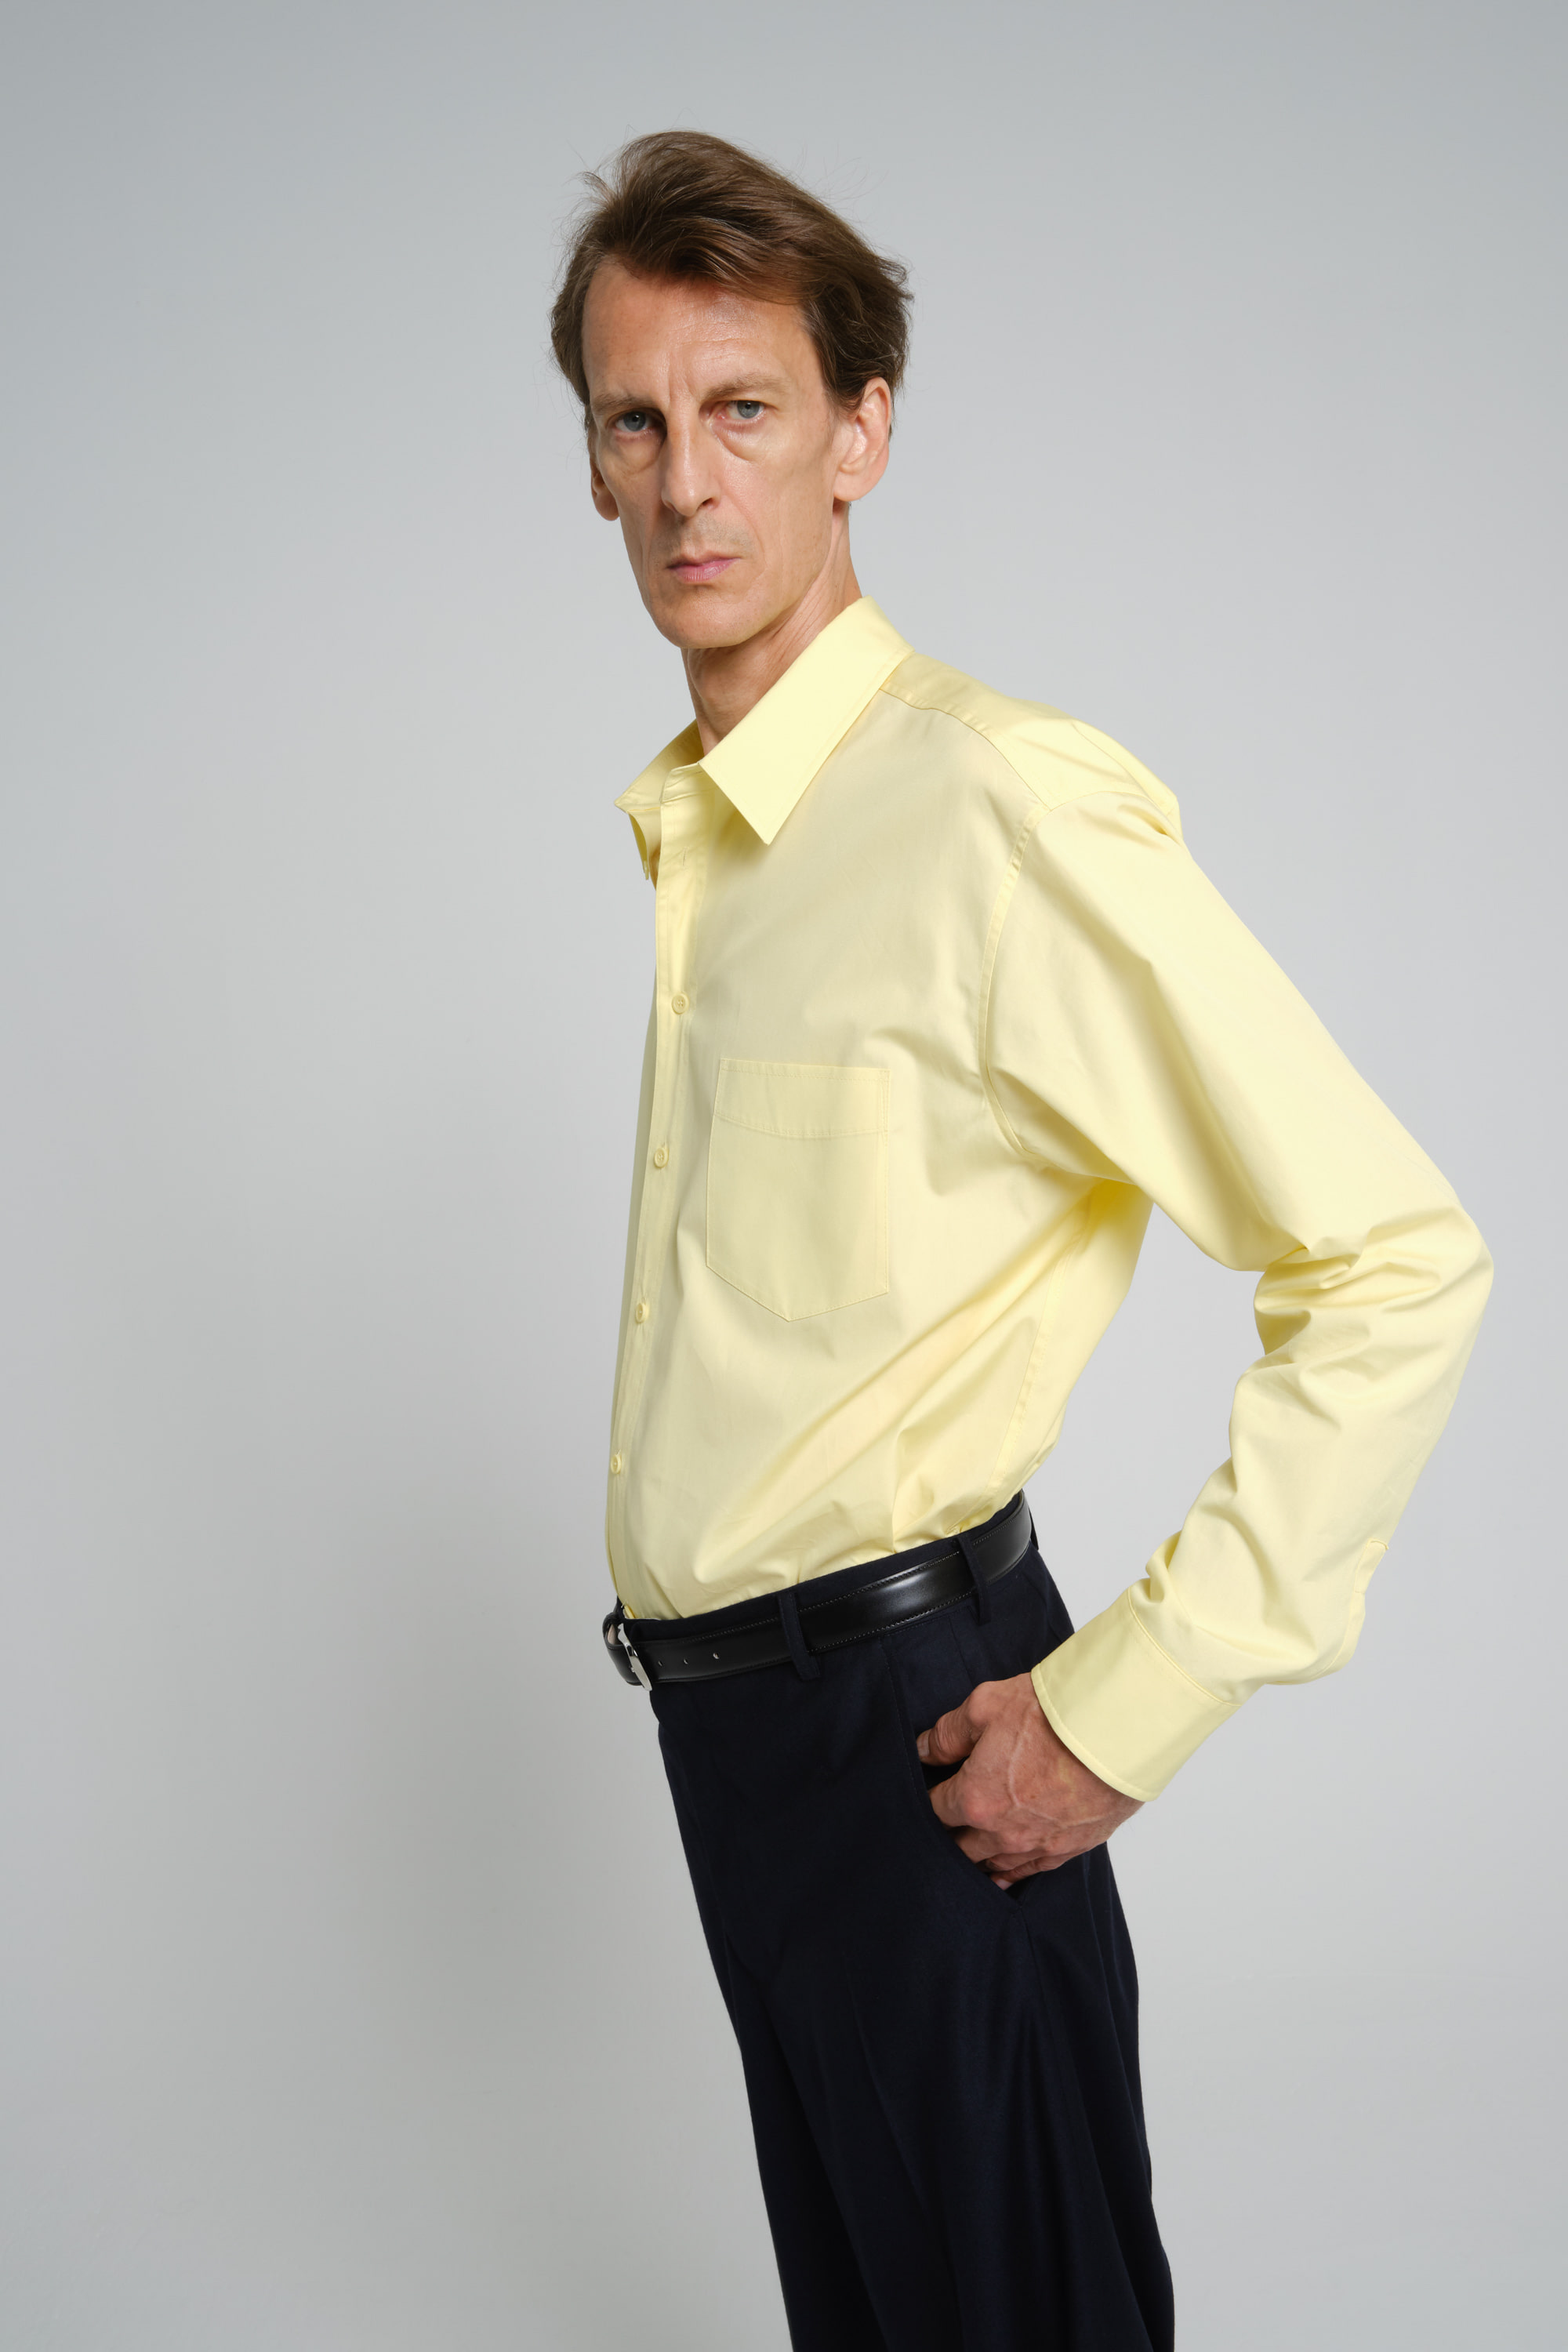 BUTTON DOWN DINING SHIRTS